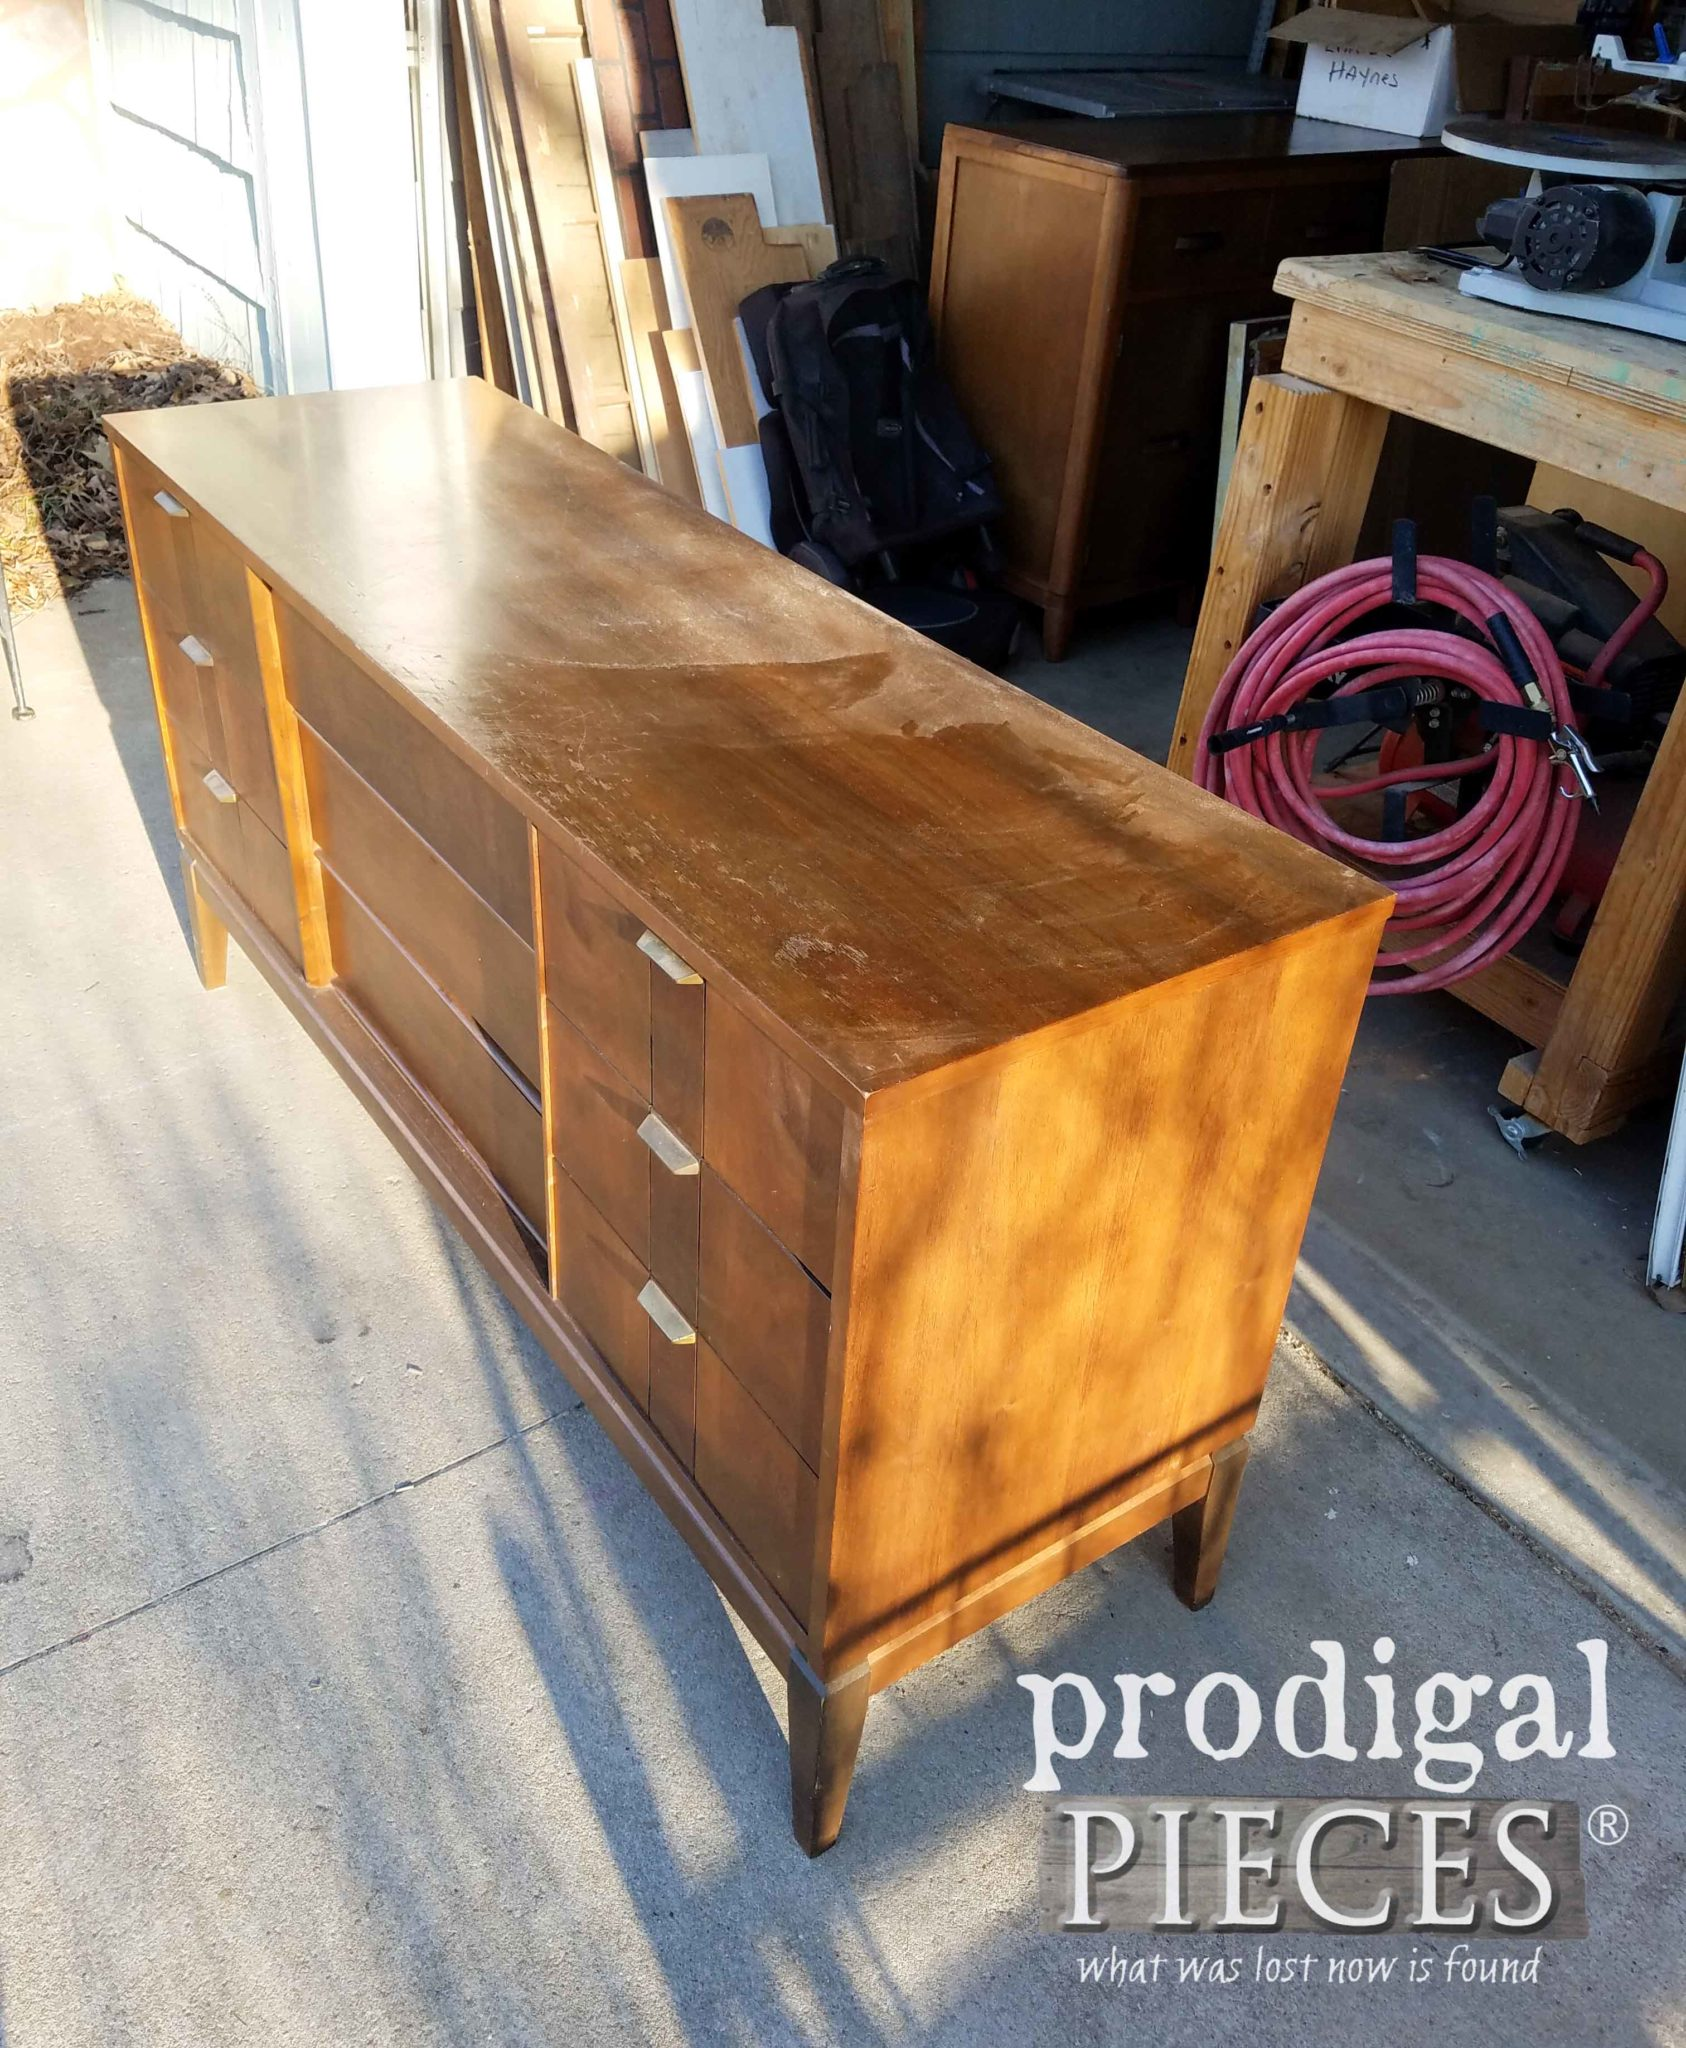 Classic Vintage Mid Century Modern Dresser by Stanley | prodigalpieces.com